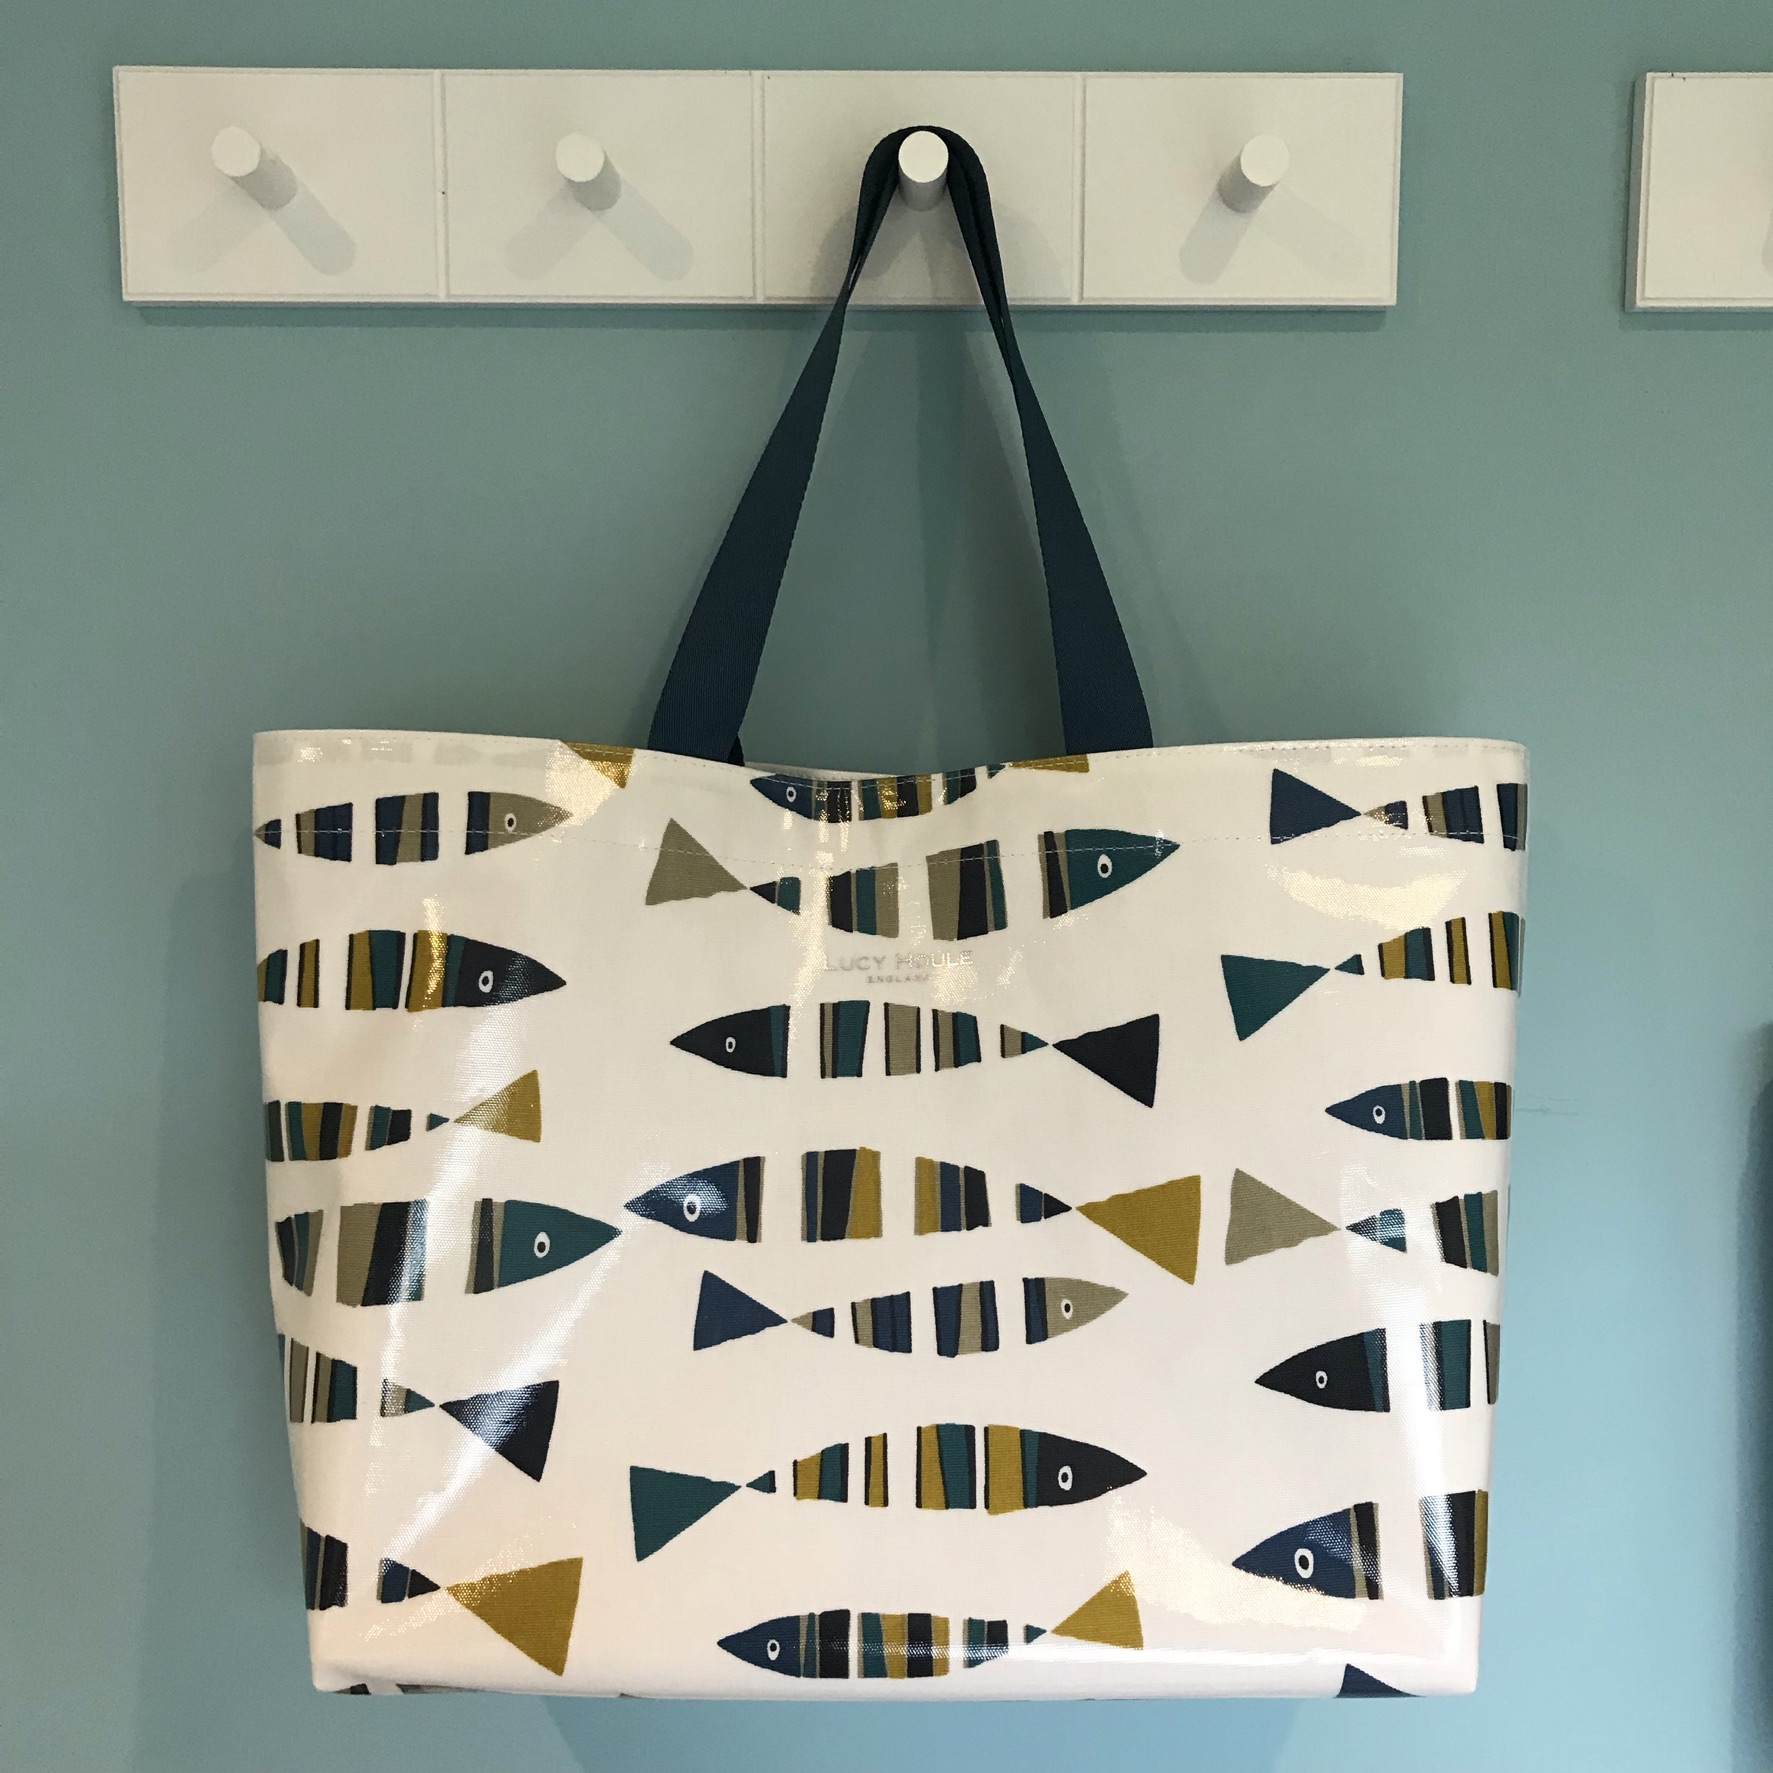 Retro Fish Extra Large Bag with Teal Handles